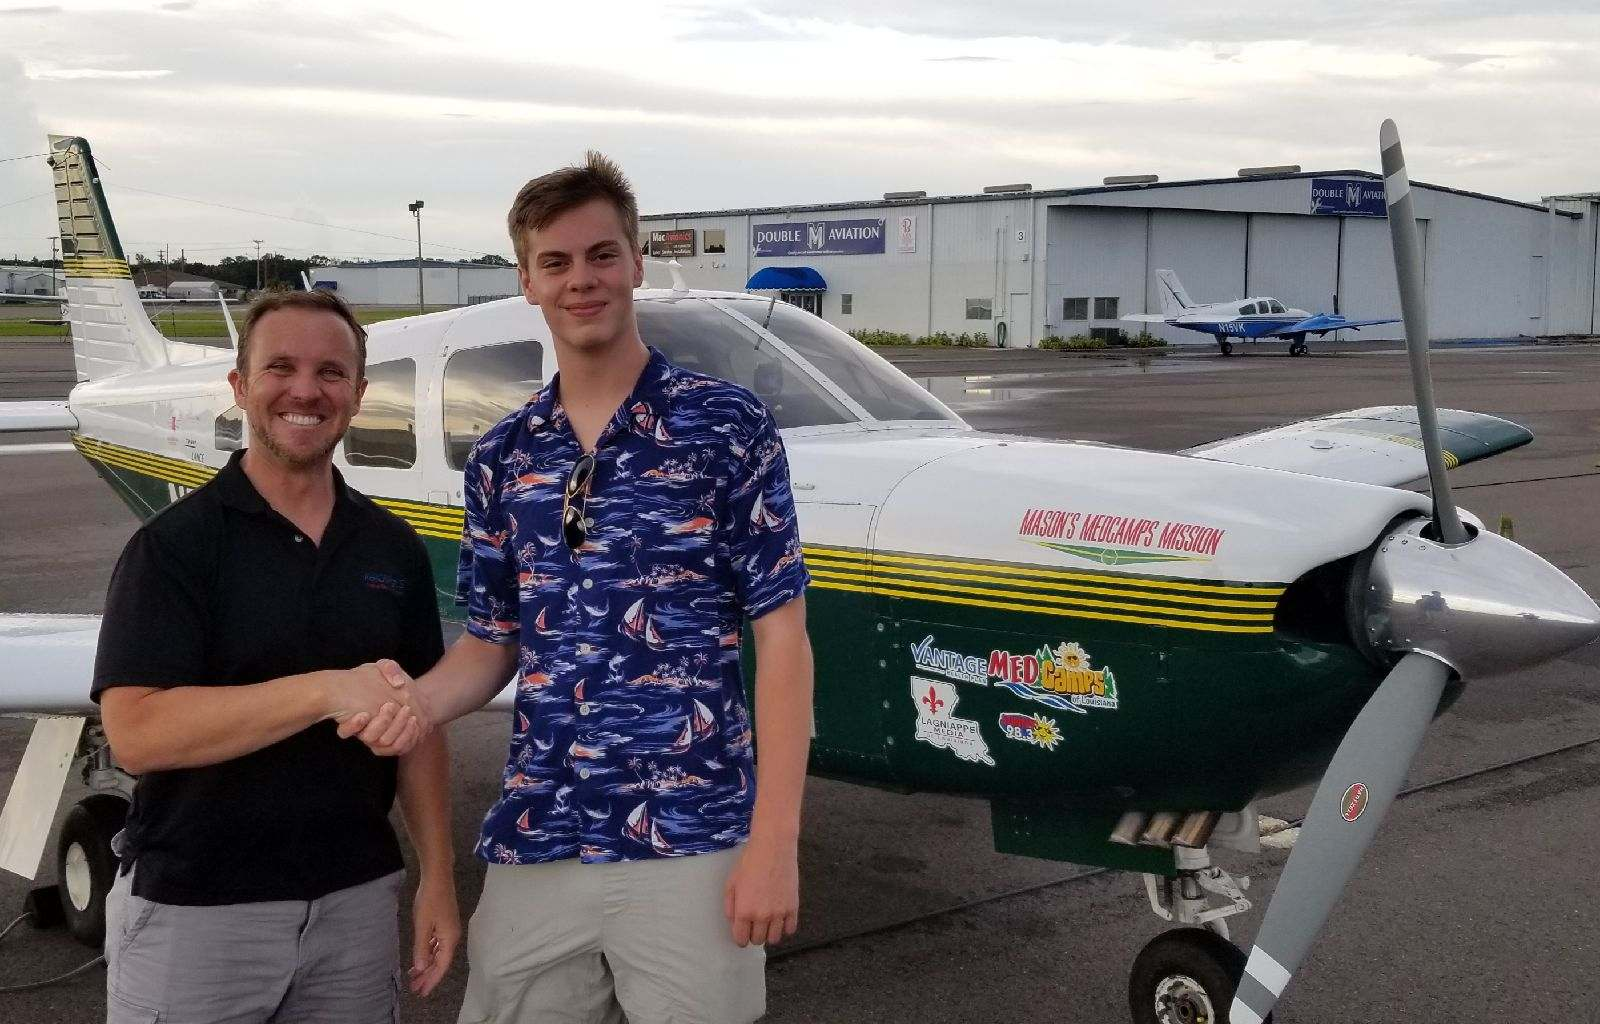 Aerospace Center for Excellence Announces Sponsorship of Teenage Pilot Flying Around the World